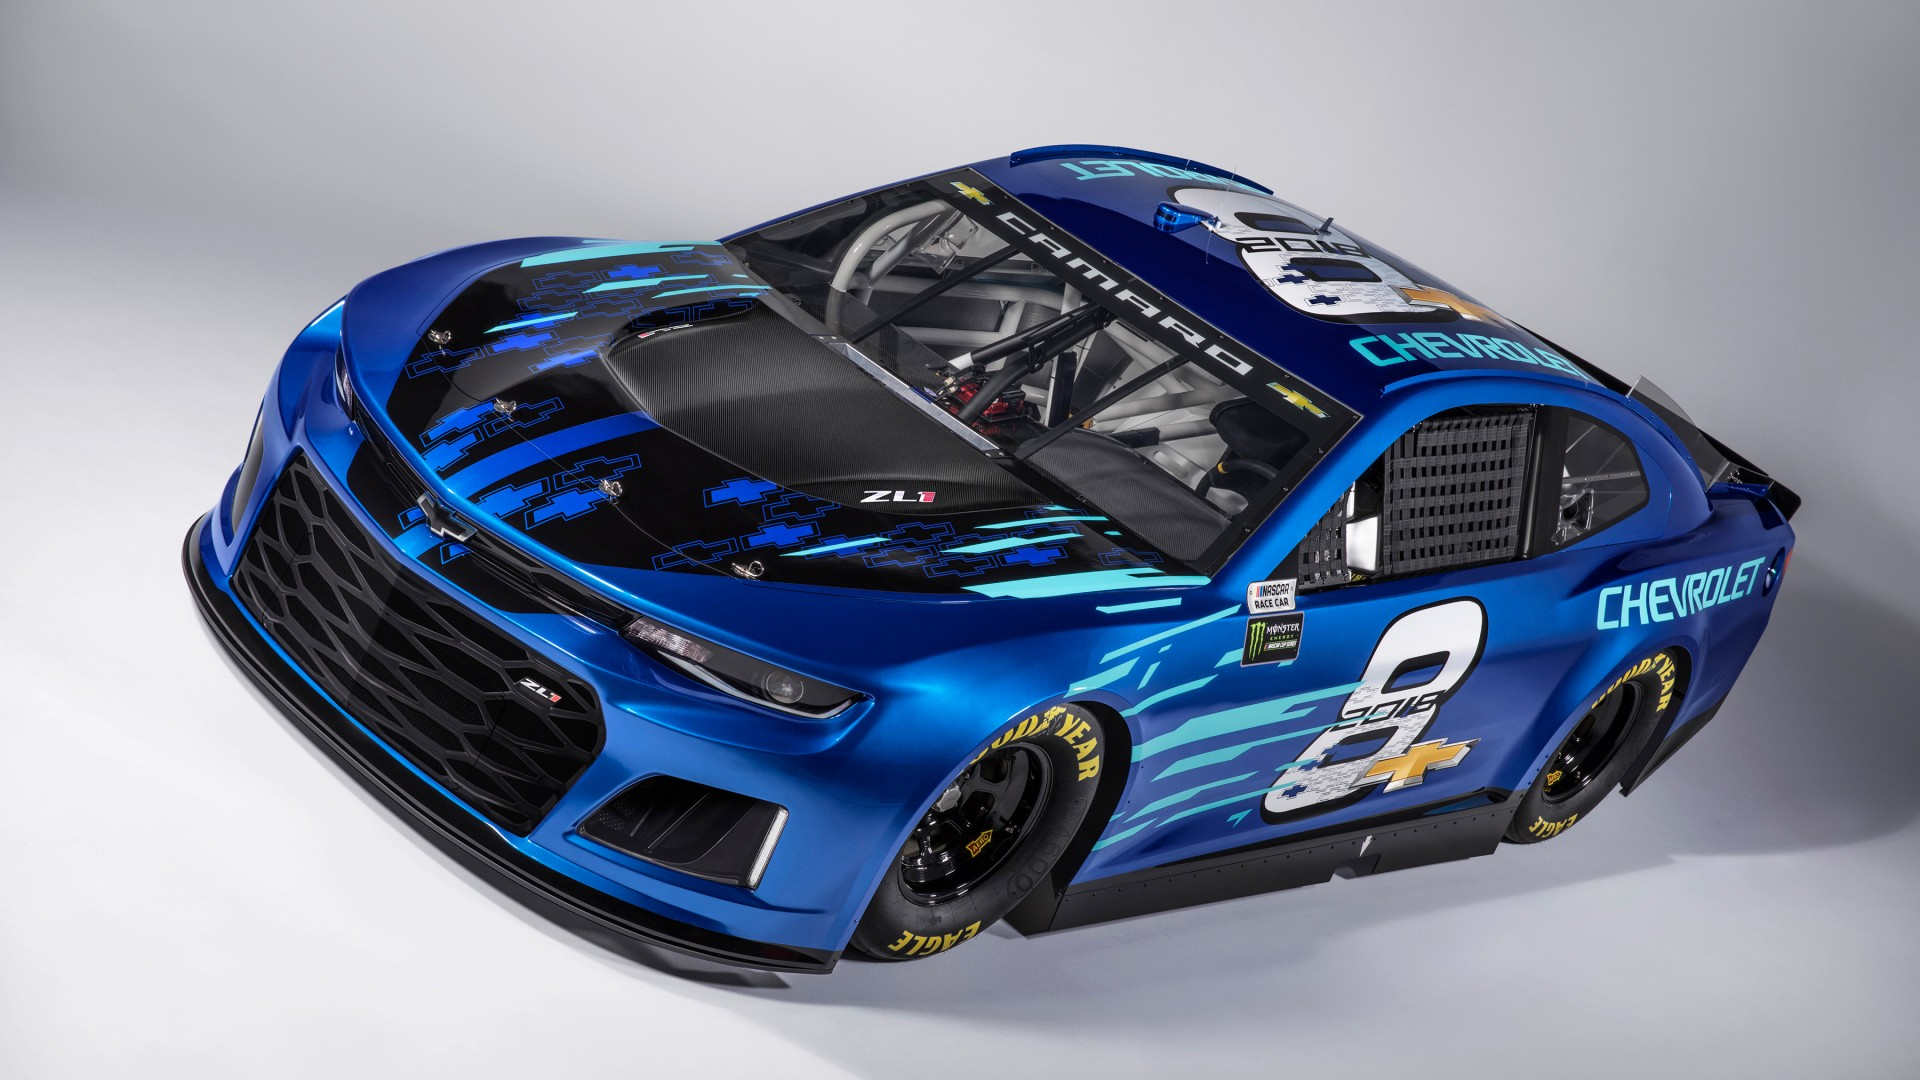 Chevrolet Camaro ZL1 NASCAR Race Car 2018 Wallpaper | HD ...